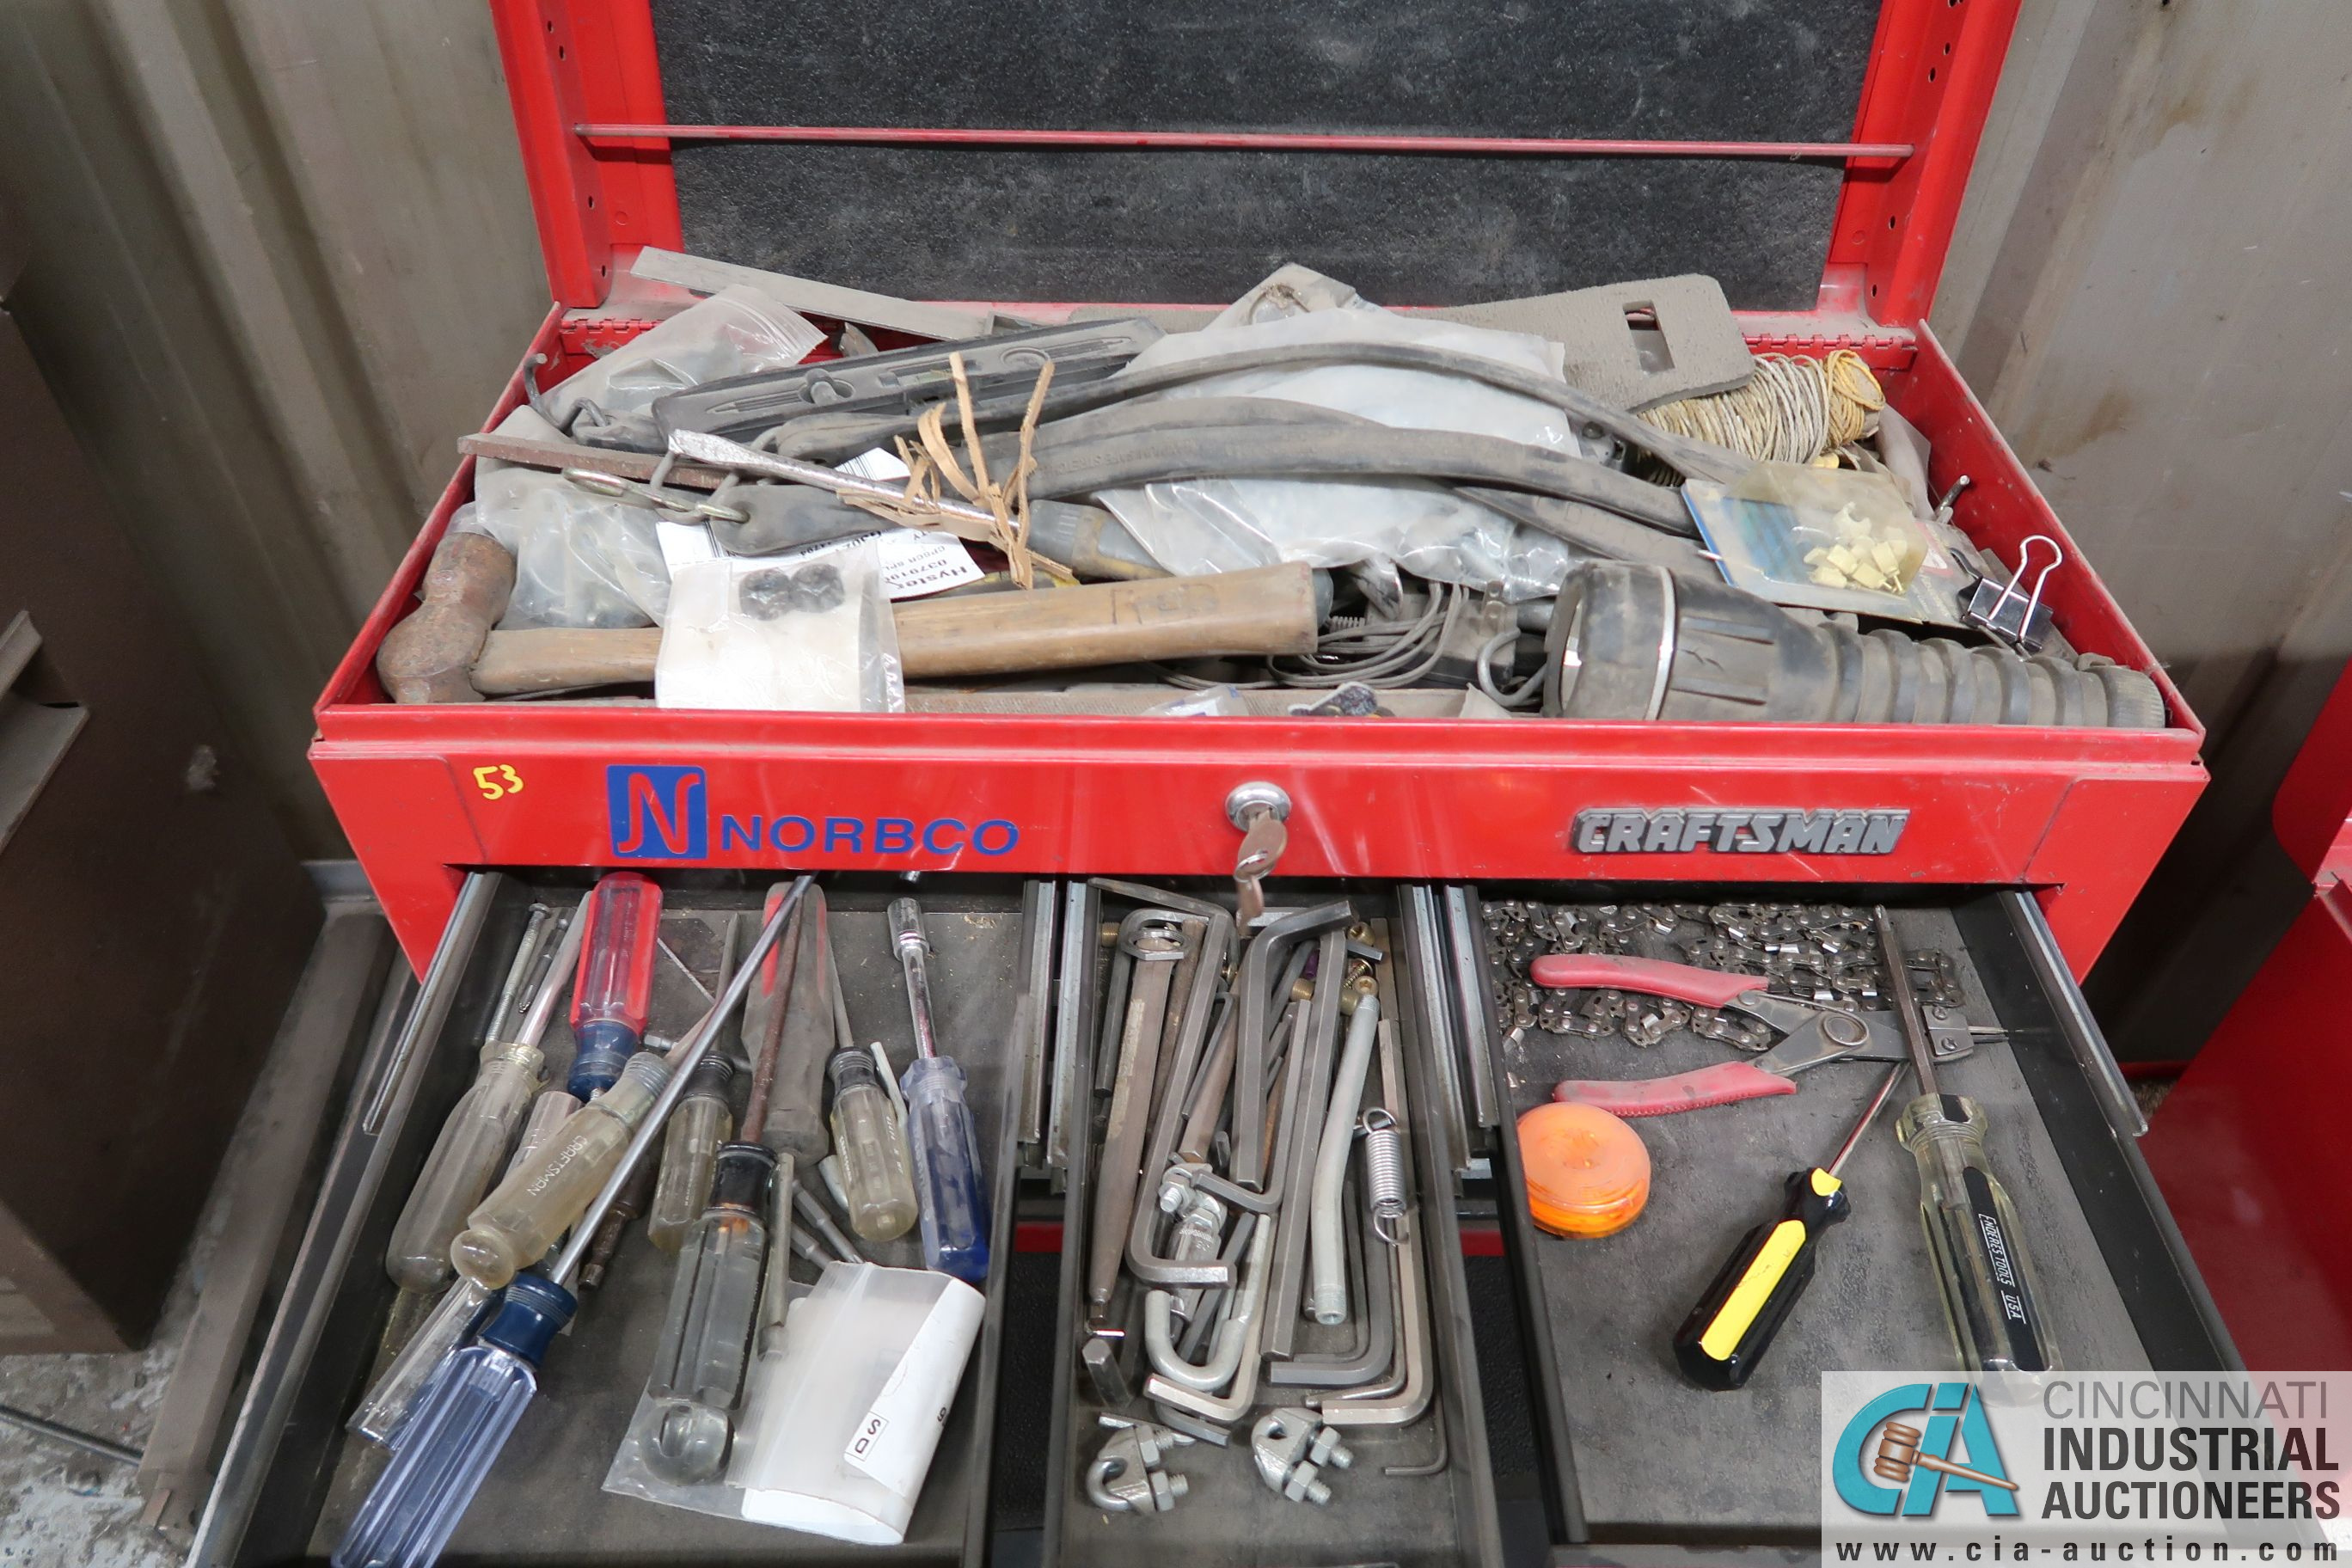 6-DRAWER CRAFTSMAN TOOL BOX WITH TOOLS AND CART - Image 2 of 5